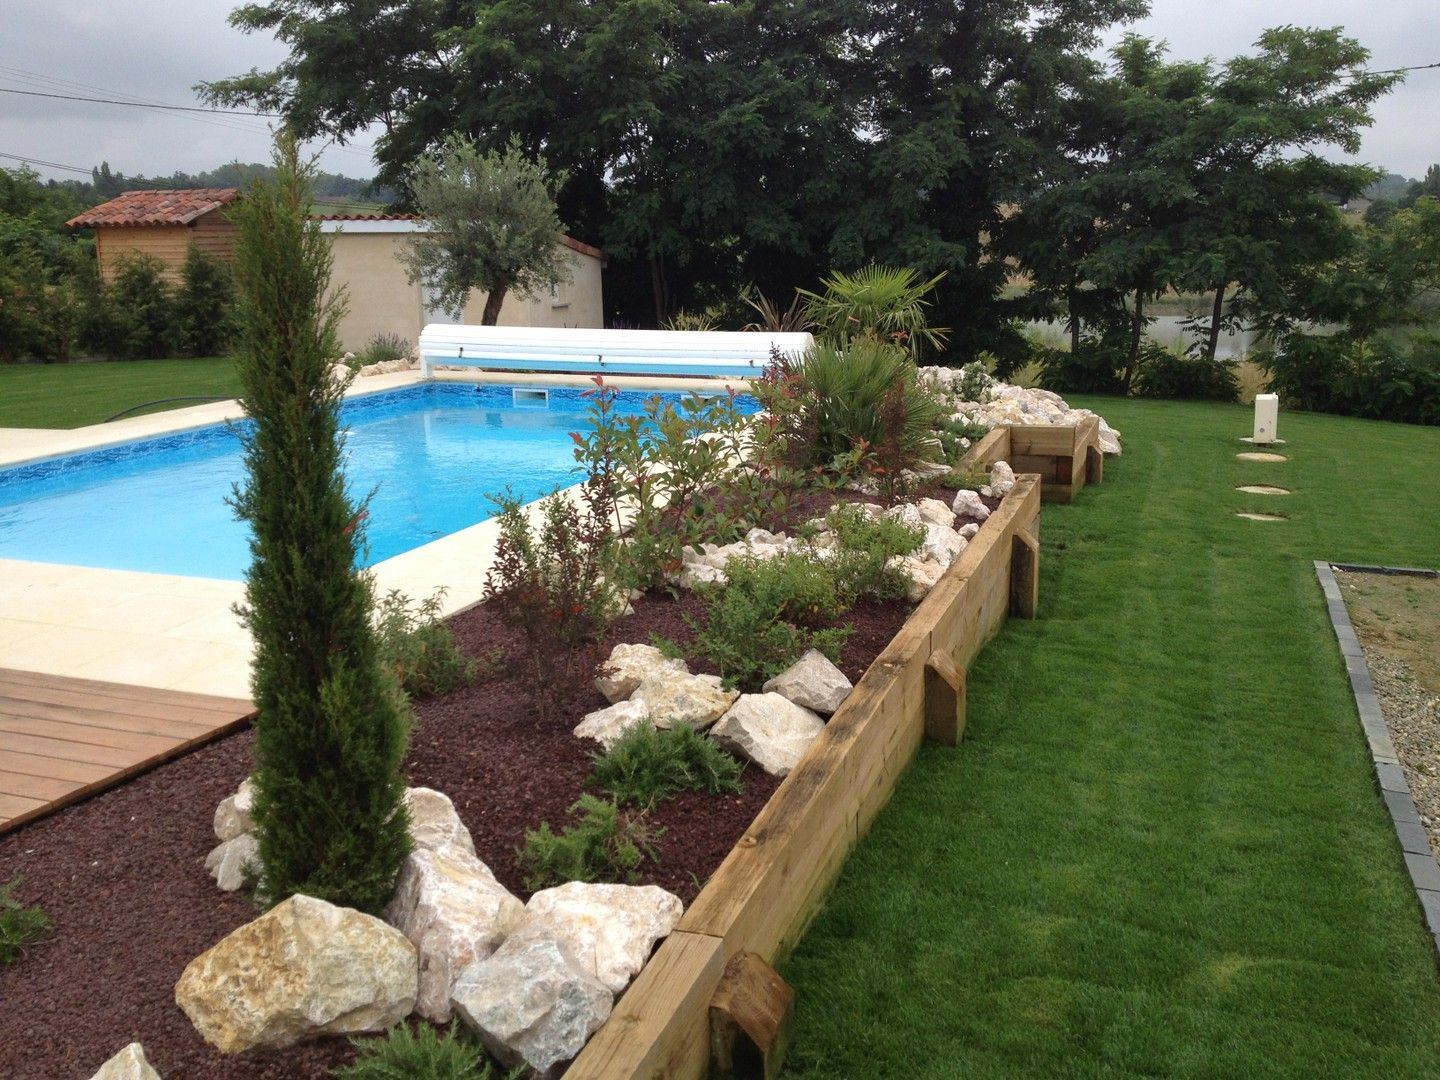 Am nagement tour de piscine piscines et bassins de for Amenagement jardin piscine